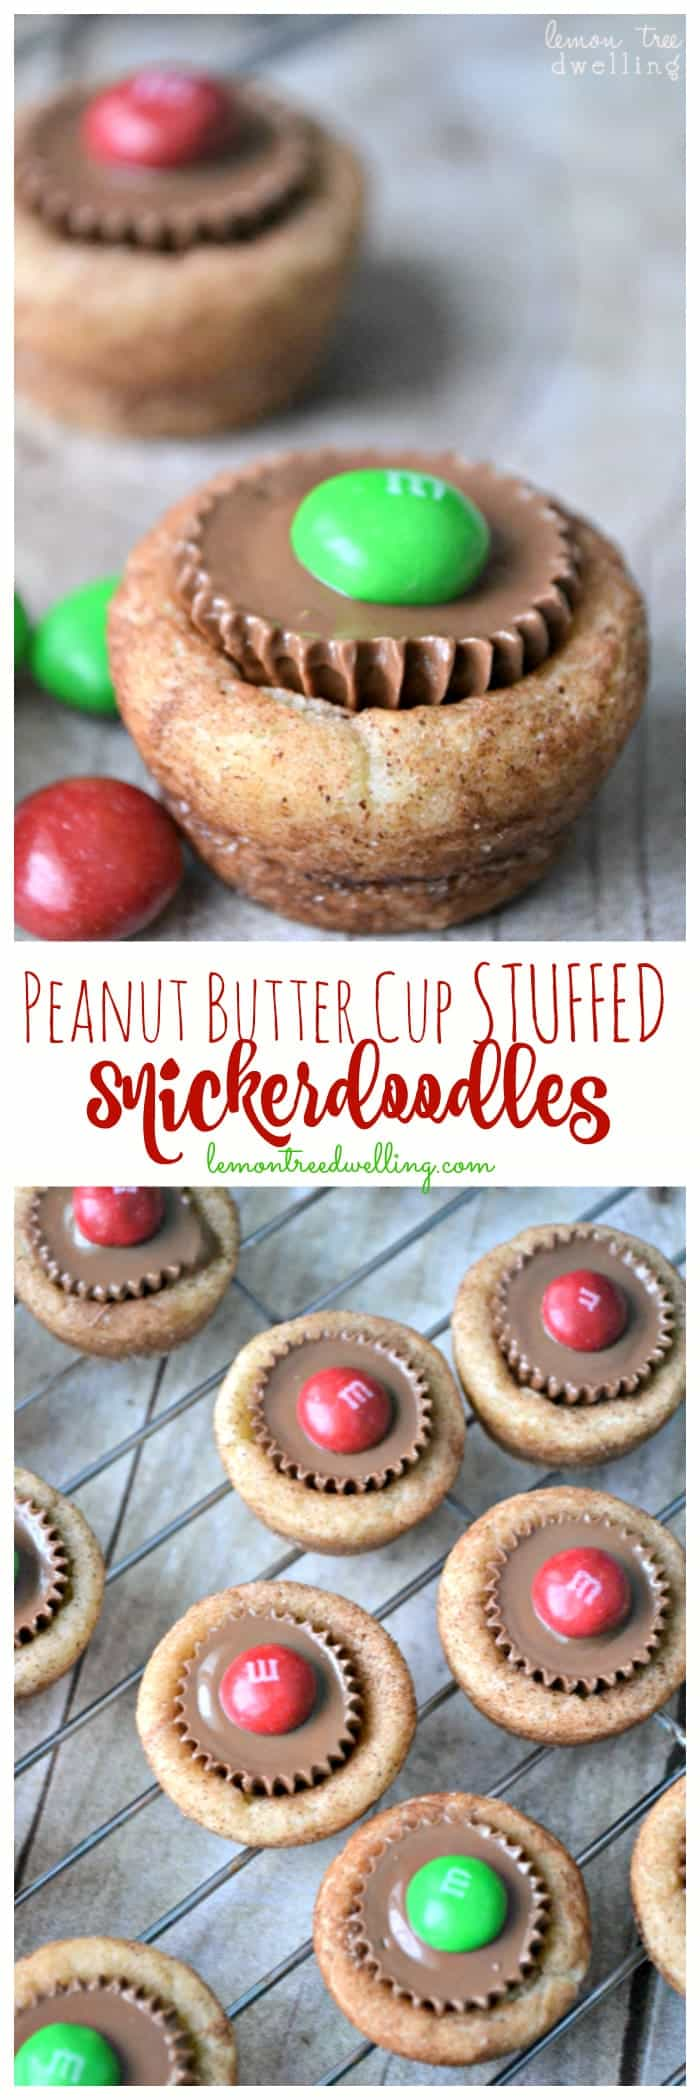 Peanut Butter Cup Stuffed Snickerdoodles are a sweet treat that will please even your biggest critics. These delightful stuffed snickerdoodles area fun and delicious combination....perfect for Christmas!